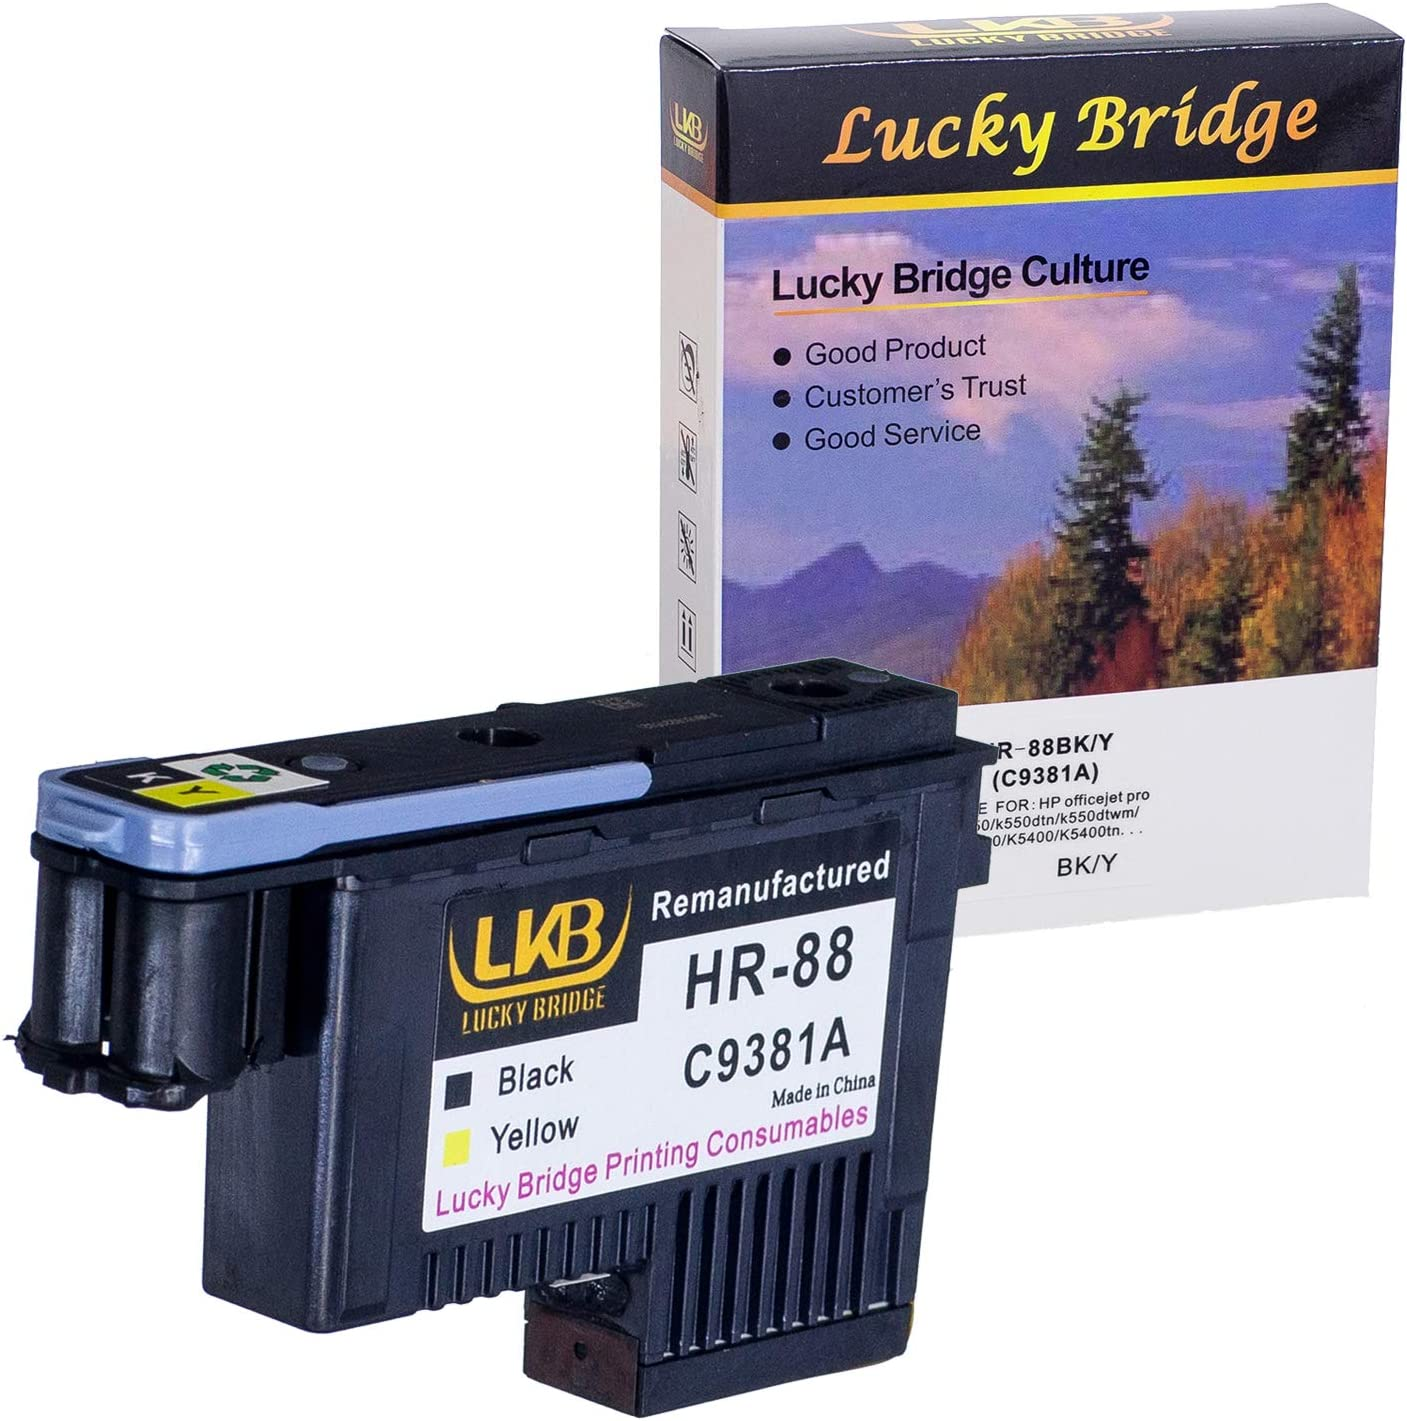 LKB Remanufactured HP88 Printhead C9381A with New and Never Used Chip Replacement for HP Office Jet K5400 L7550 L7580 L7590 L7650 L7680 L7750 L7780 L7790 Printer(1BY) 1PK-US